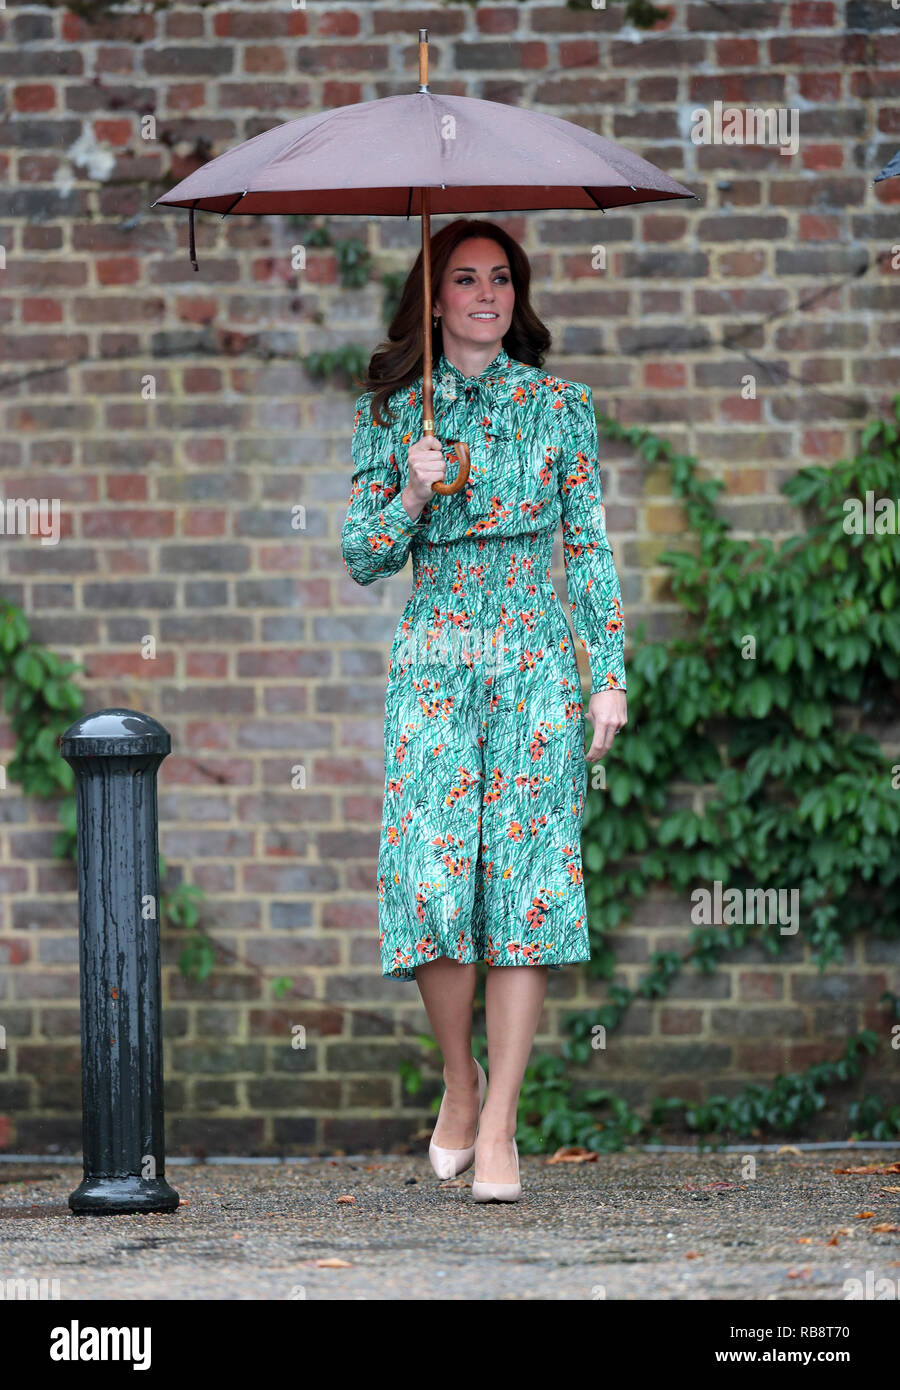 The Duchess of Cambridge, arrives for a visit to The Sunken Garden in the grounds of Kensington Palace. - Stock Image